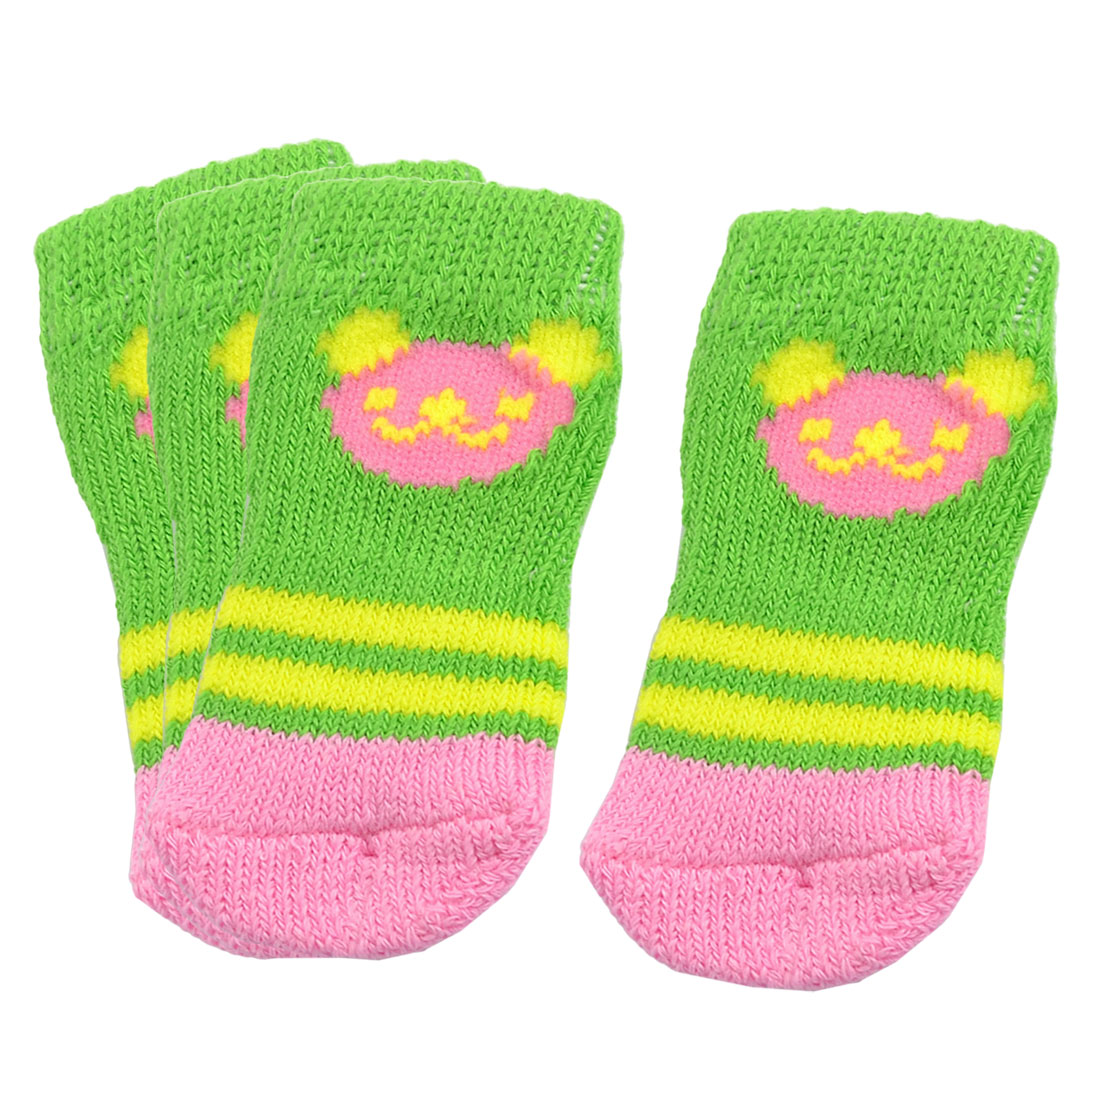 Doggy Pet Yellow Striped Stretchy Knitted Socks Green Pink 2 Pairs